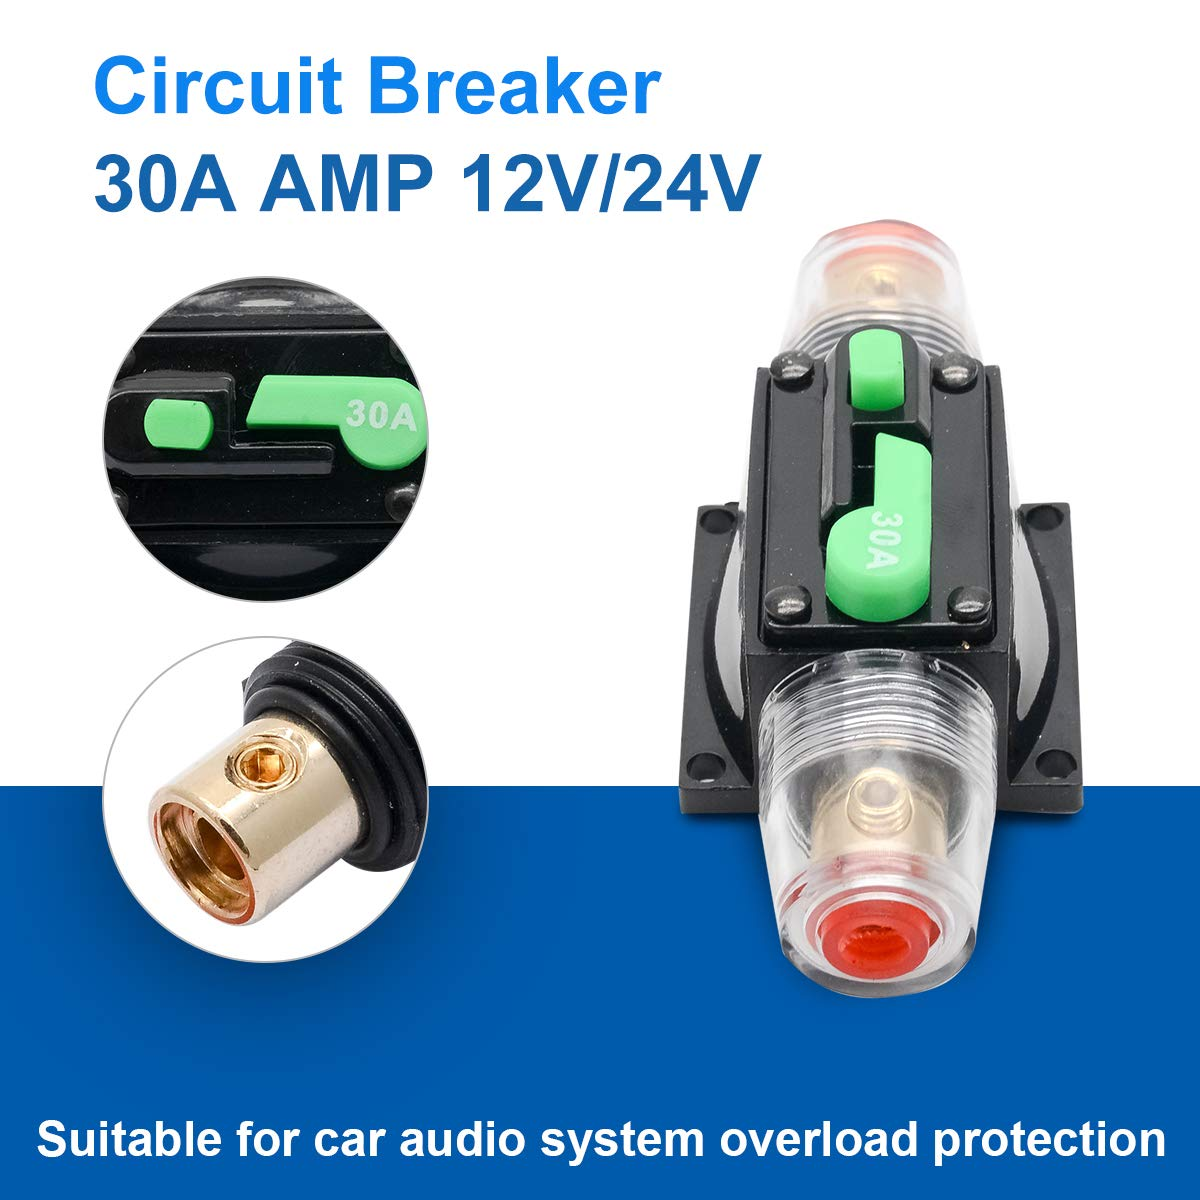 50 Amp Circuit Breaker with Manual Reset HugeAuto 12V-24V DC Car Audio Inline Circuit Breaker Fuse Block for Auto Motor Car Marine Boat Audio Solar Inverter System Protection